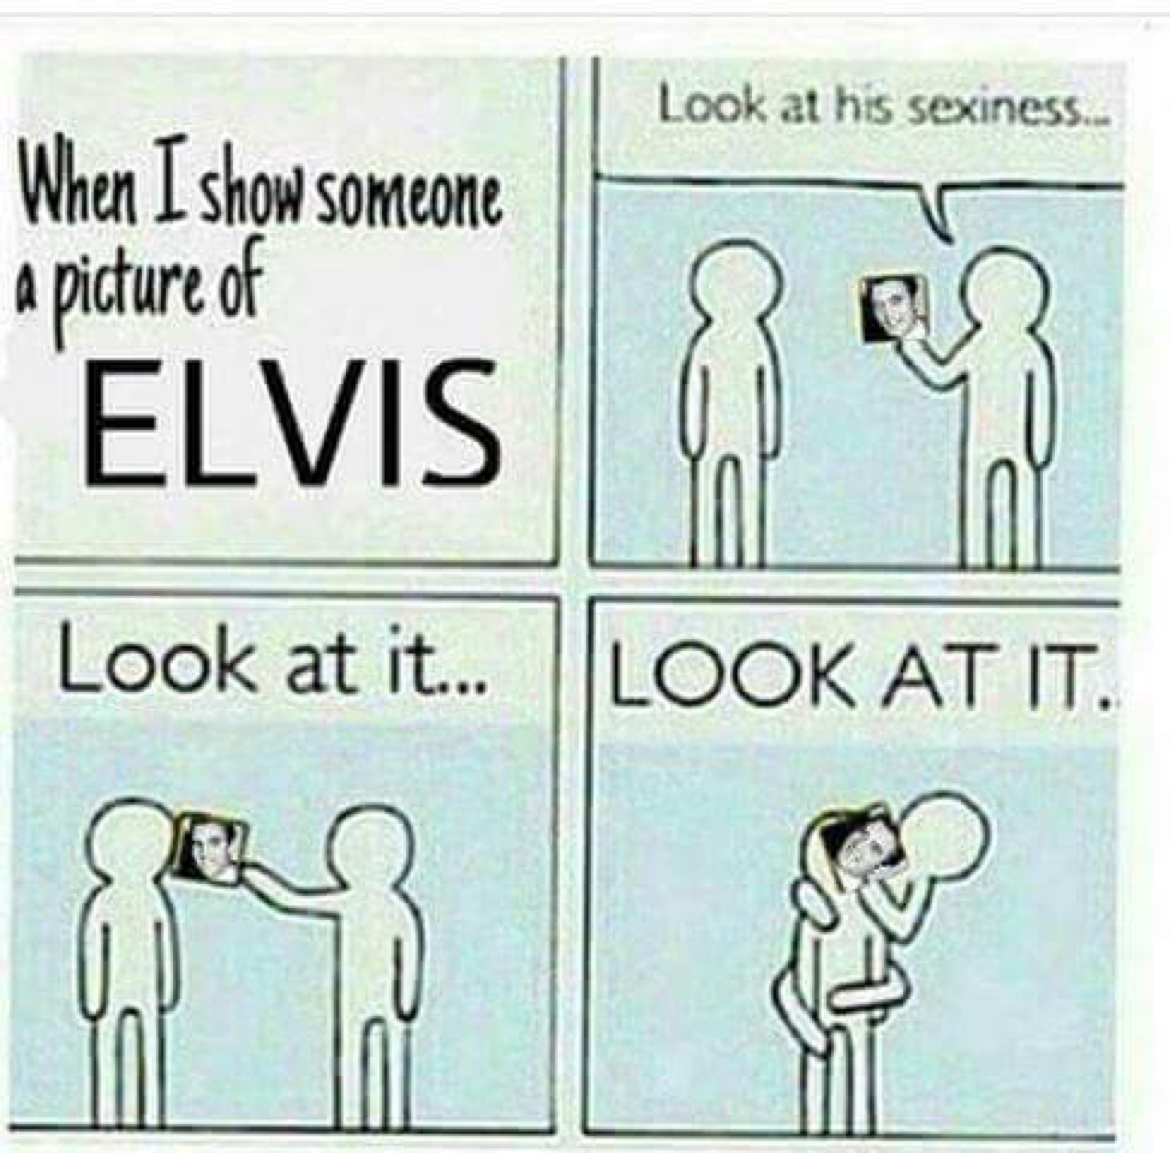 This is me and I'm sure every #Elvis fan!! #Elvis2017 @cyndy316